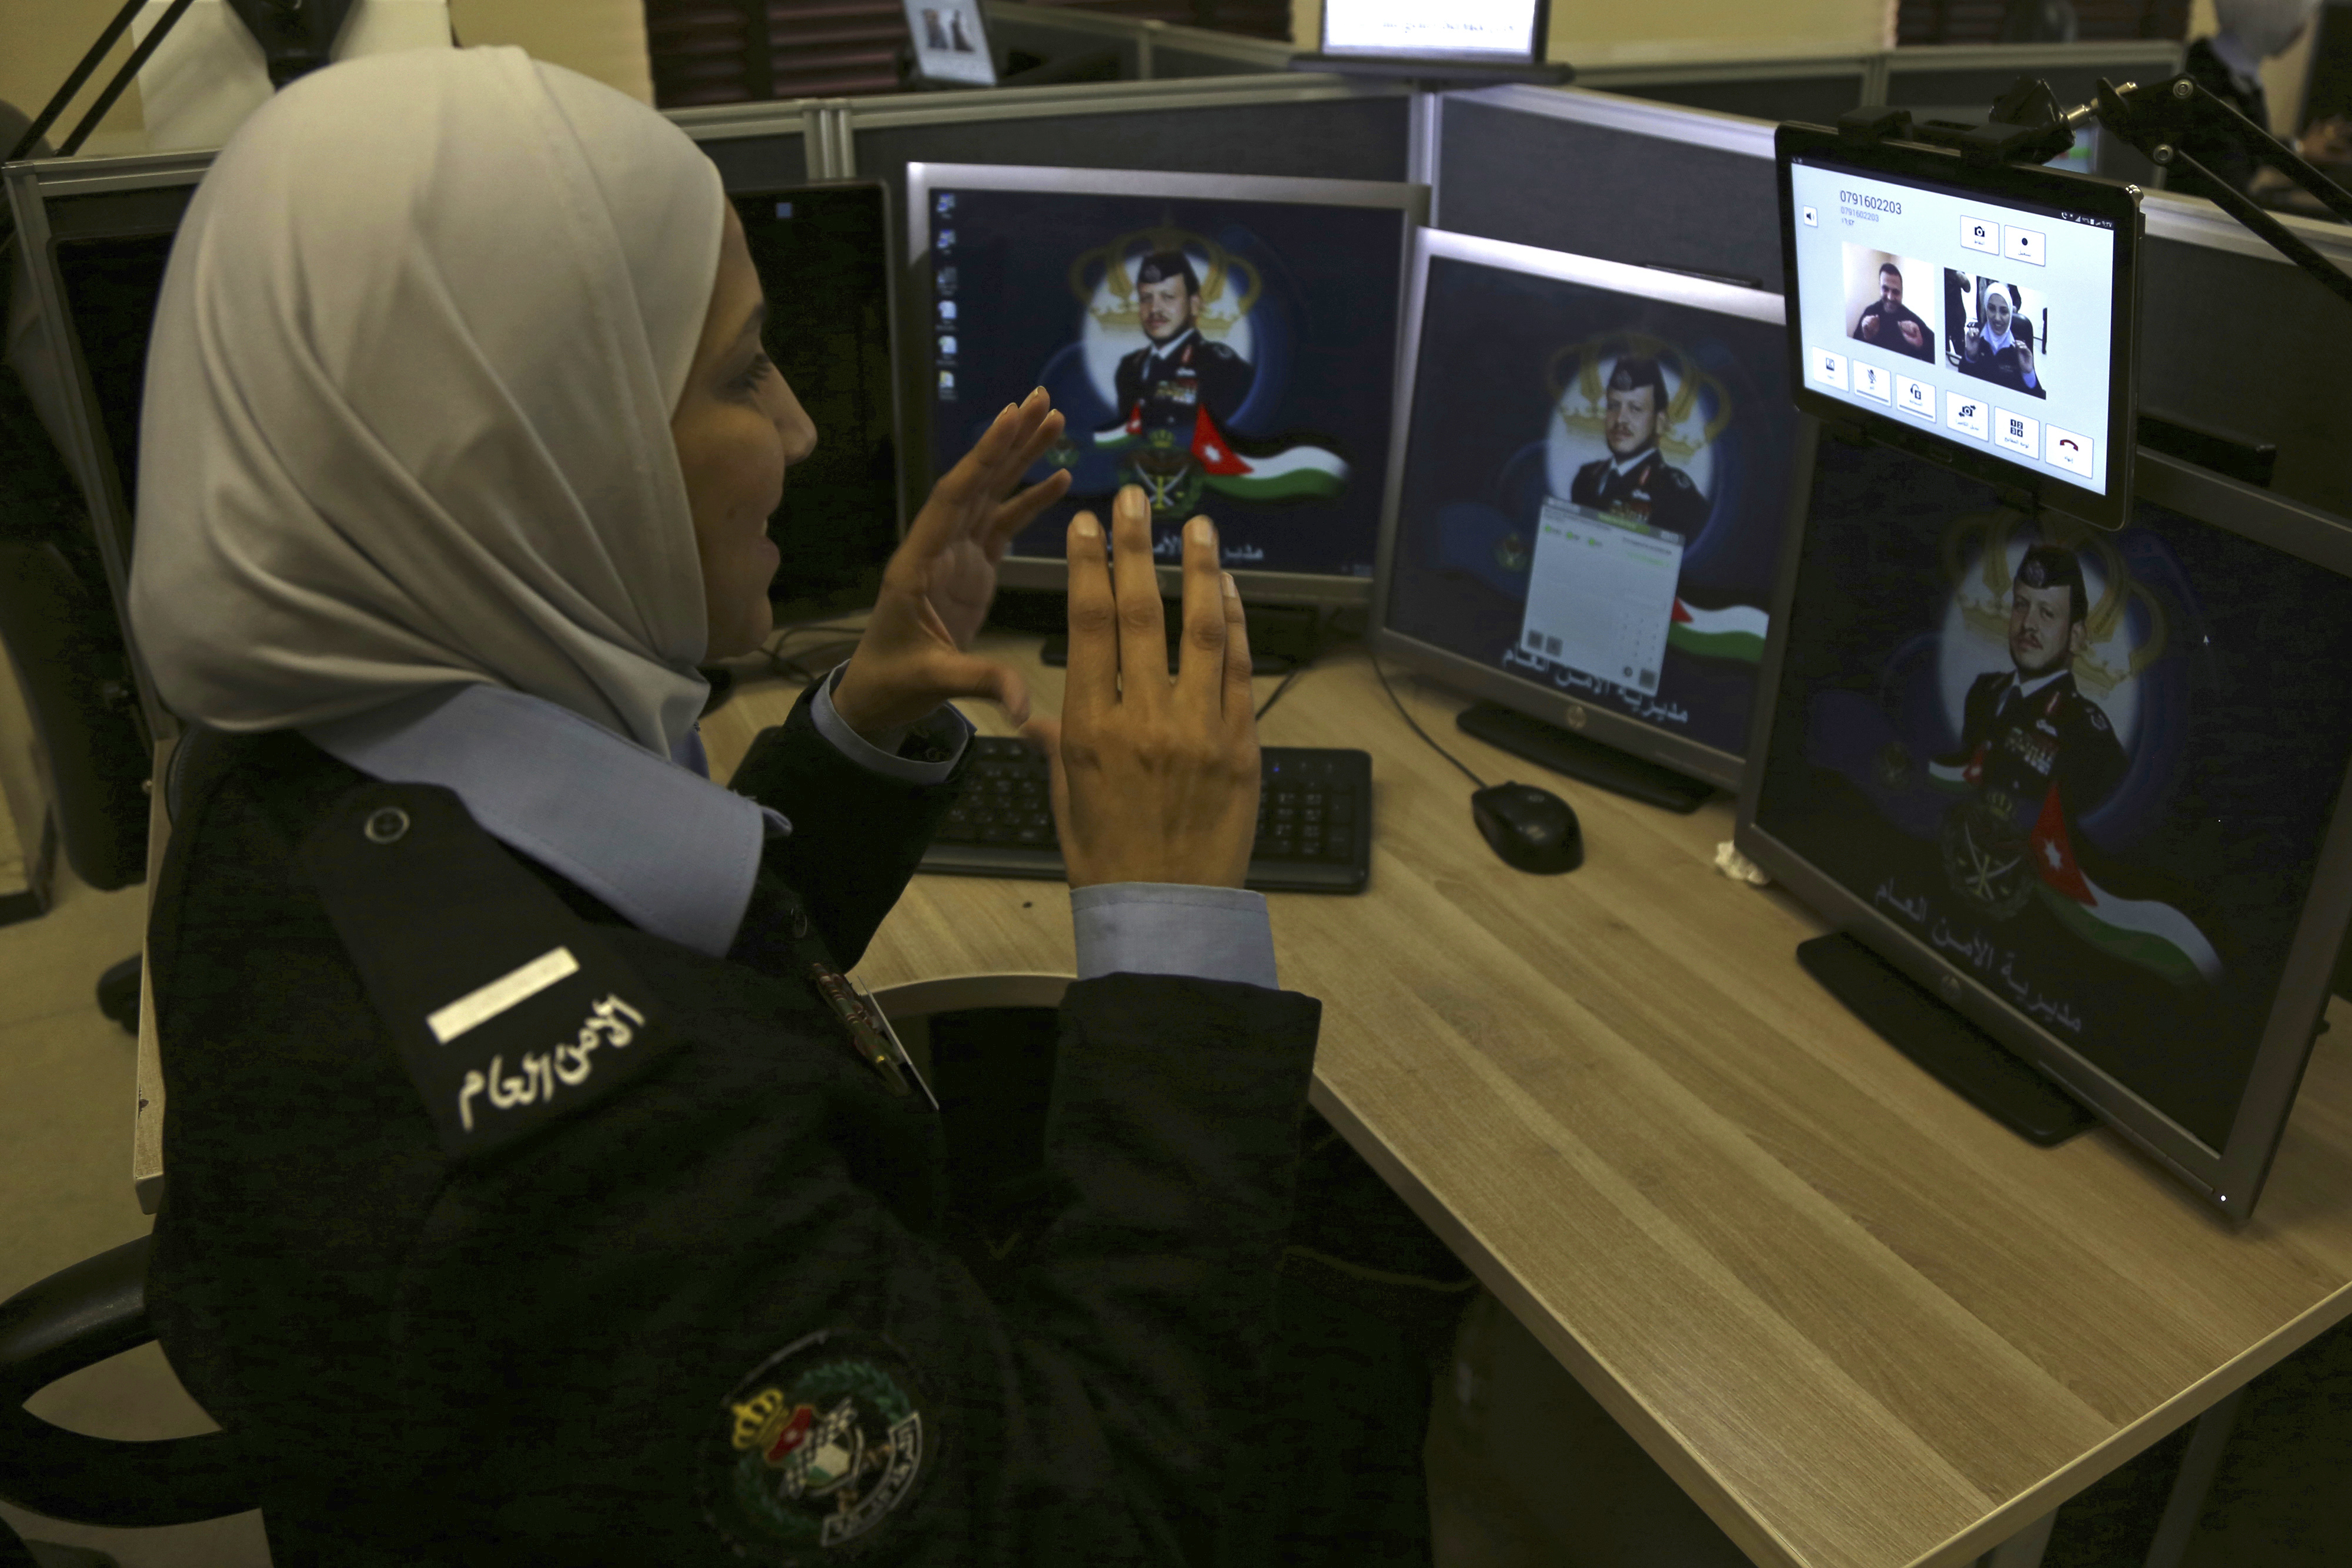 A dispatcher using sign language communicates with a hearing-impaired caller at Jordan's 911 emergency call center in the capital of Amman on March 20, 2018. The caller complained about what he said were undeserved traffic tickets. (Raad Adayleh/AP)